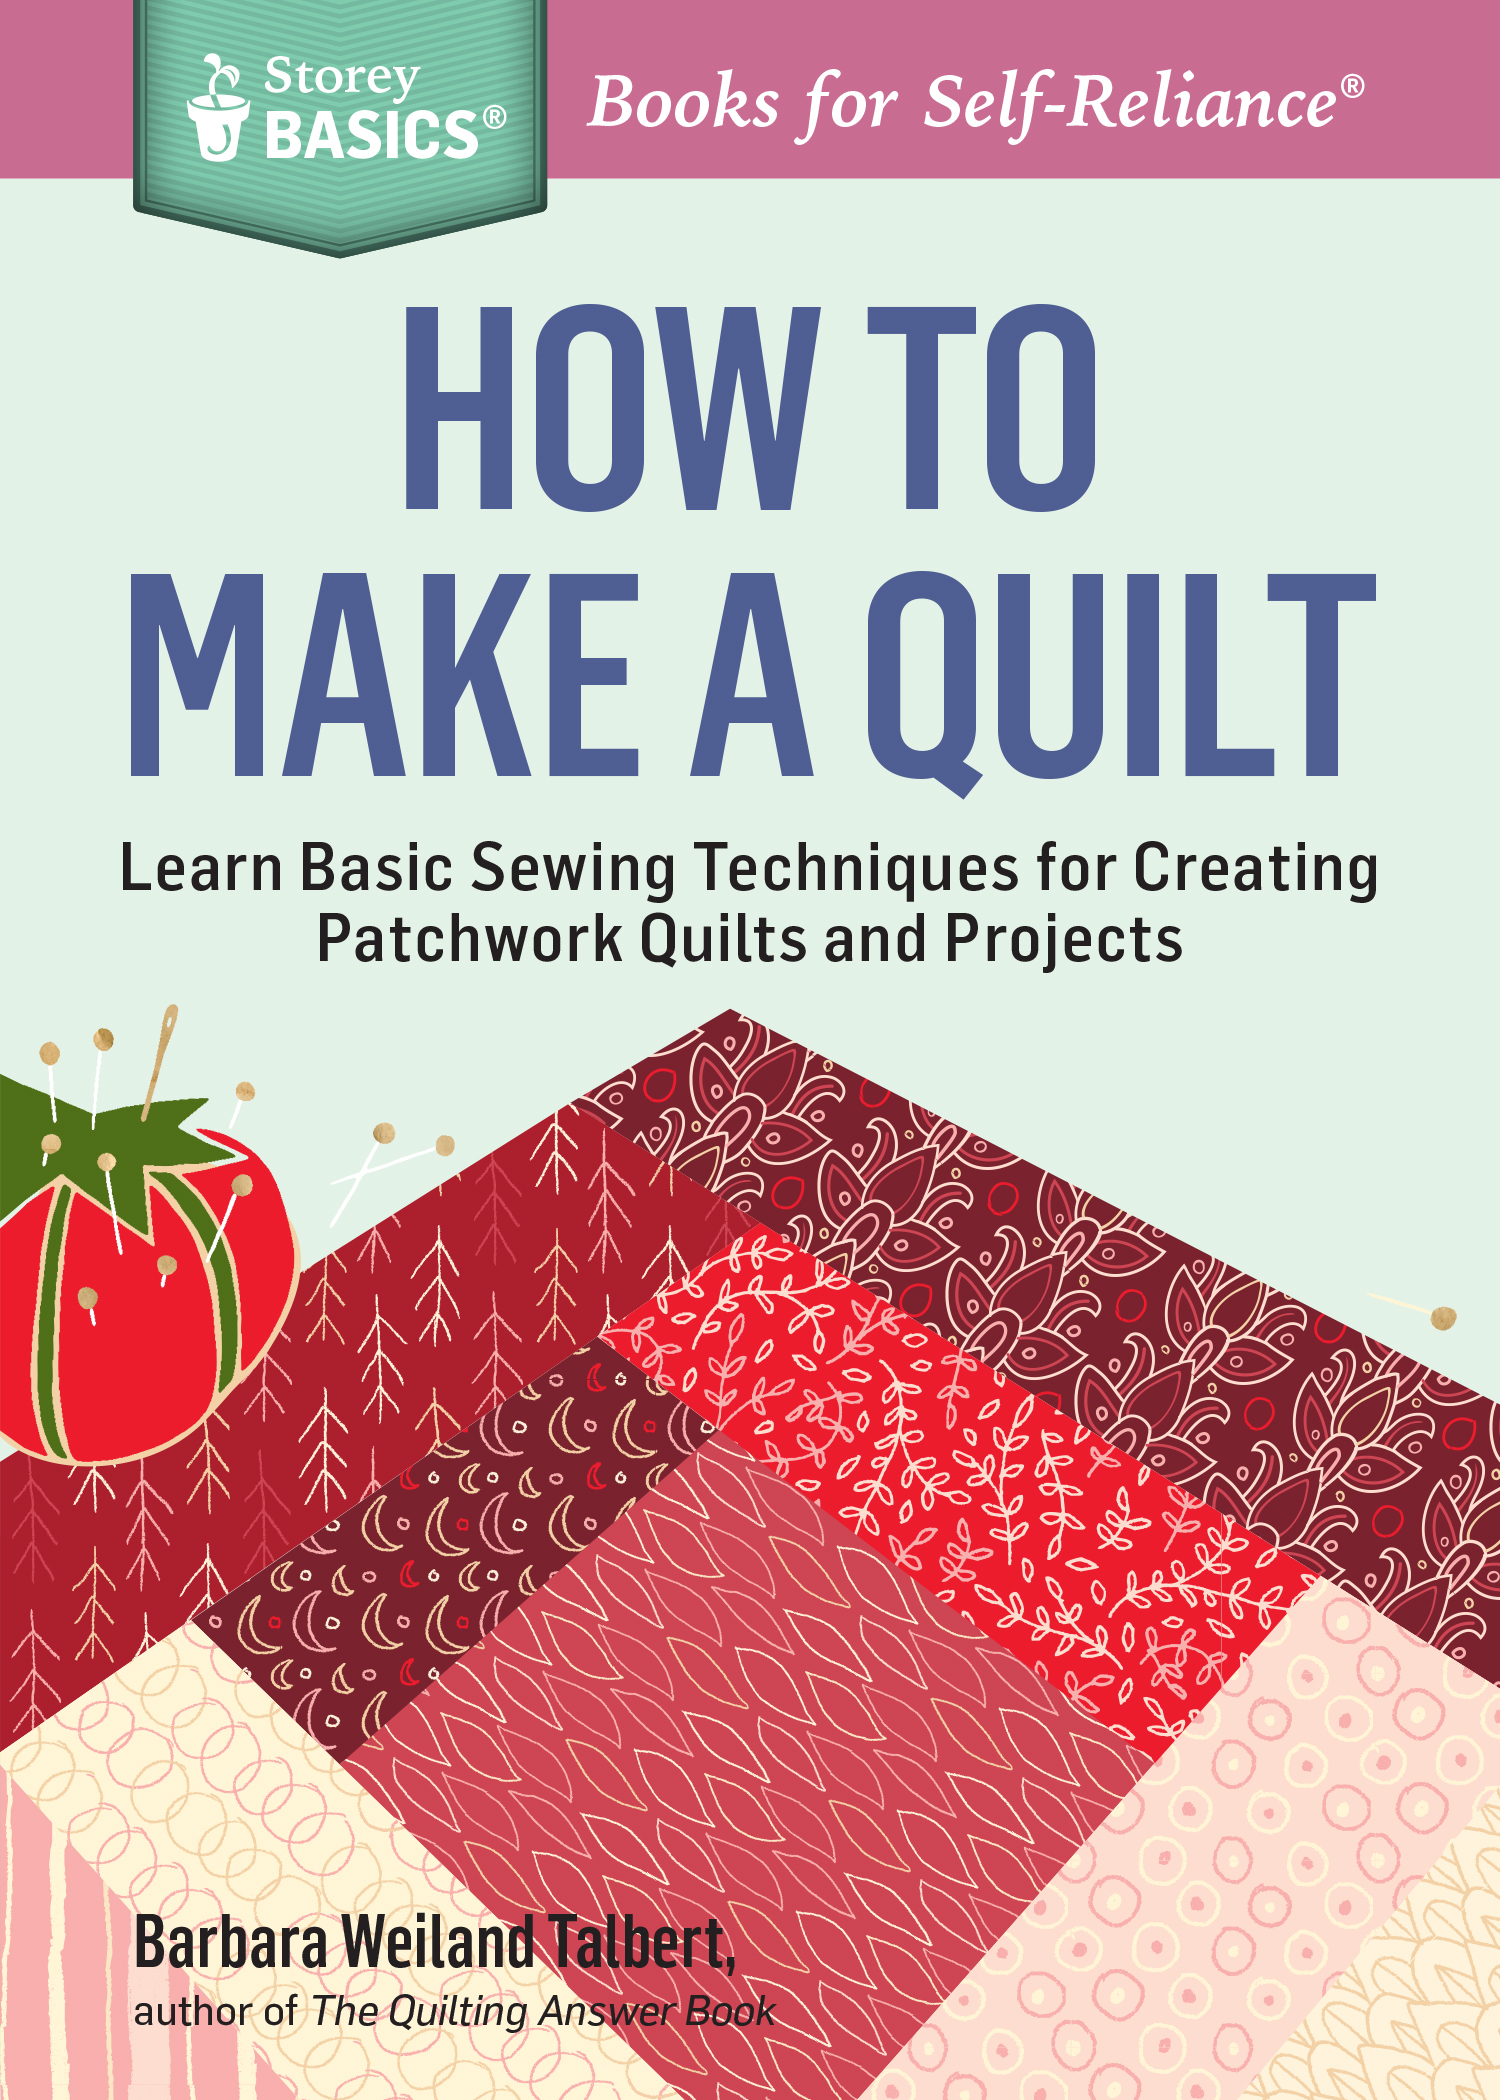 How to Make a Quilt Learn Basic Sewing Techniques for Creating Patchwork Quilts and Projects. A Storey BASICS® Title - Barbara Weiland Talbert